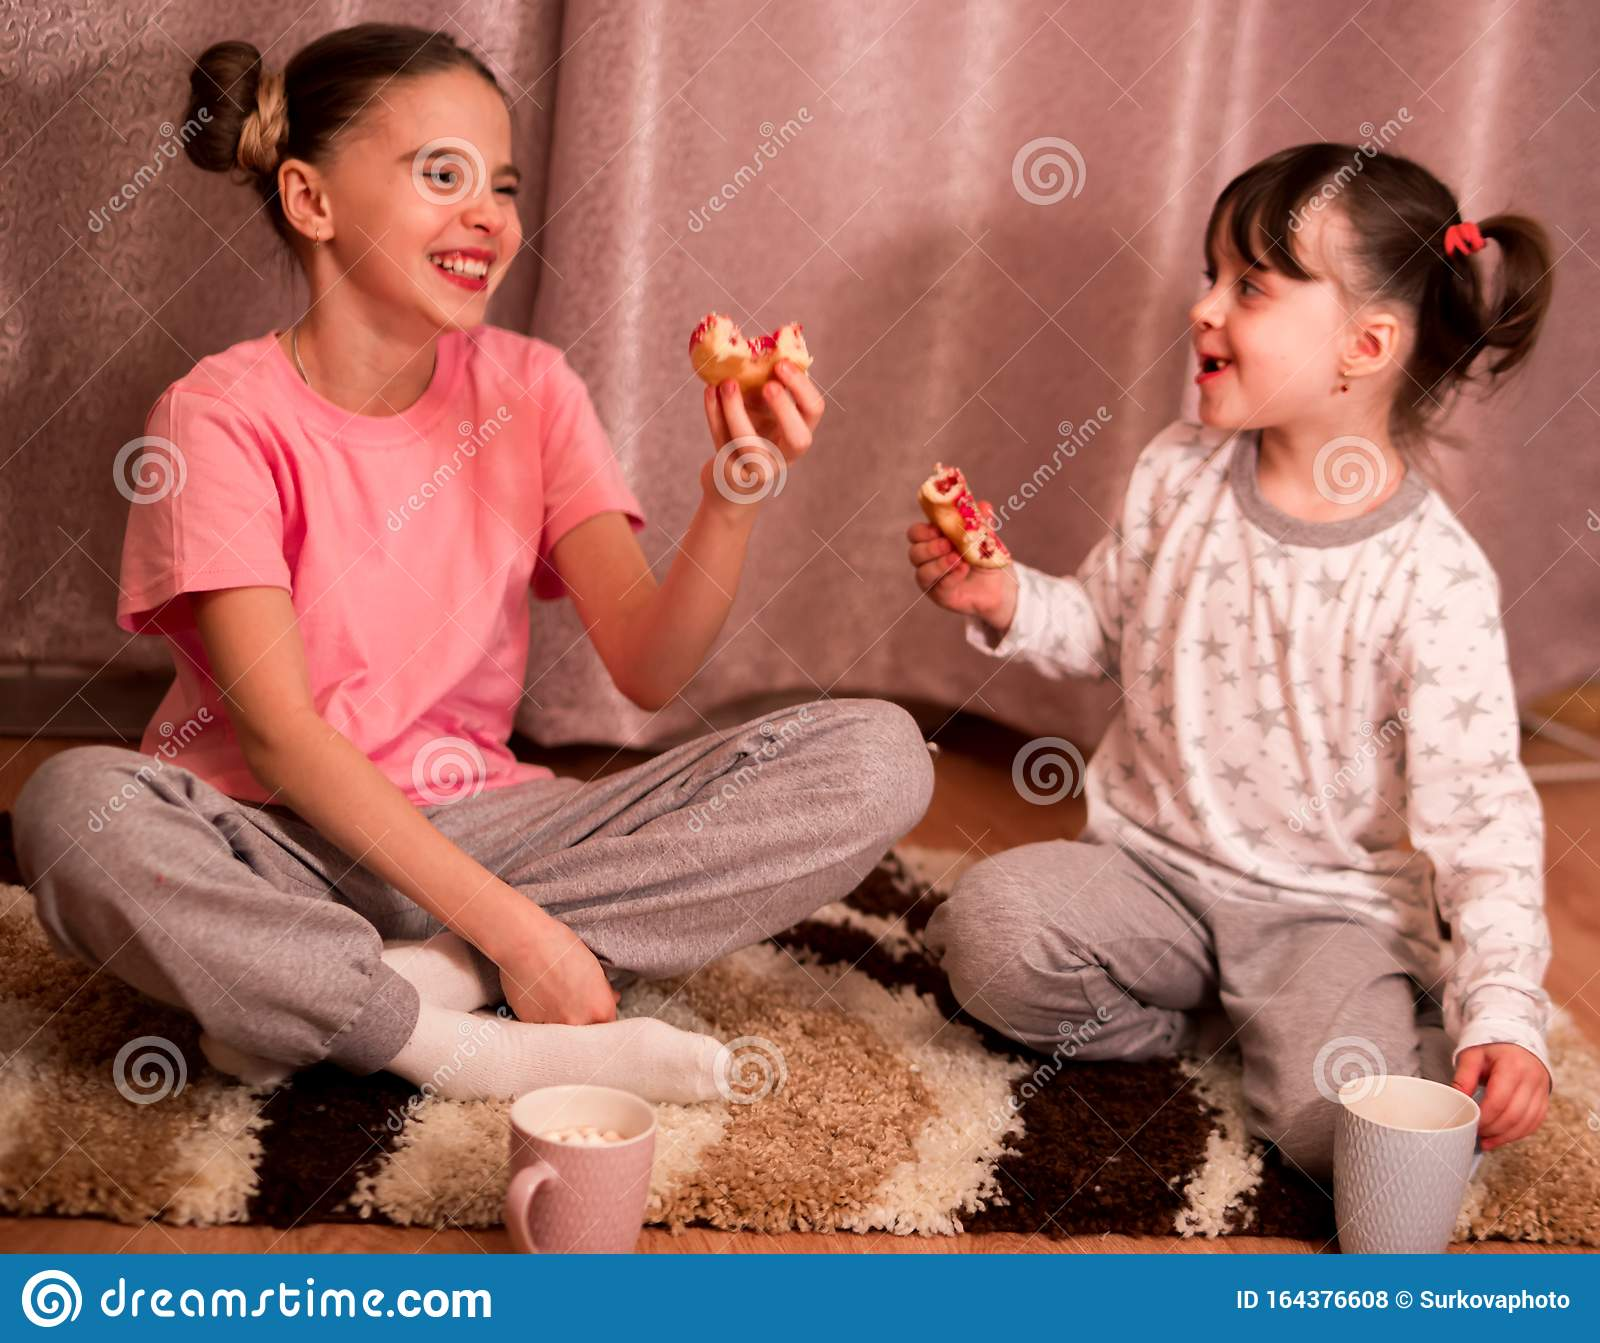 Children S Pajama Party Funny Girls In Pink White And Gray Pajamas With Bob Hairstyles Eat Donuts And Laugh Stock Photo Image Of Friends Hairstyle 164376608